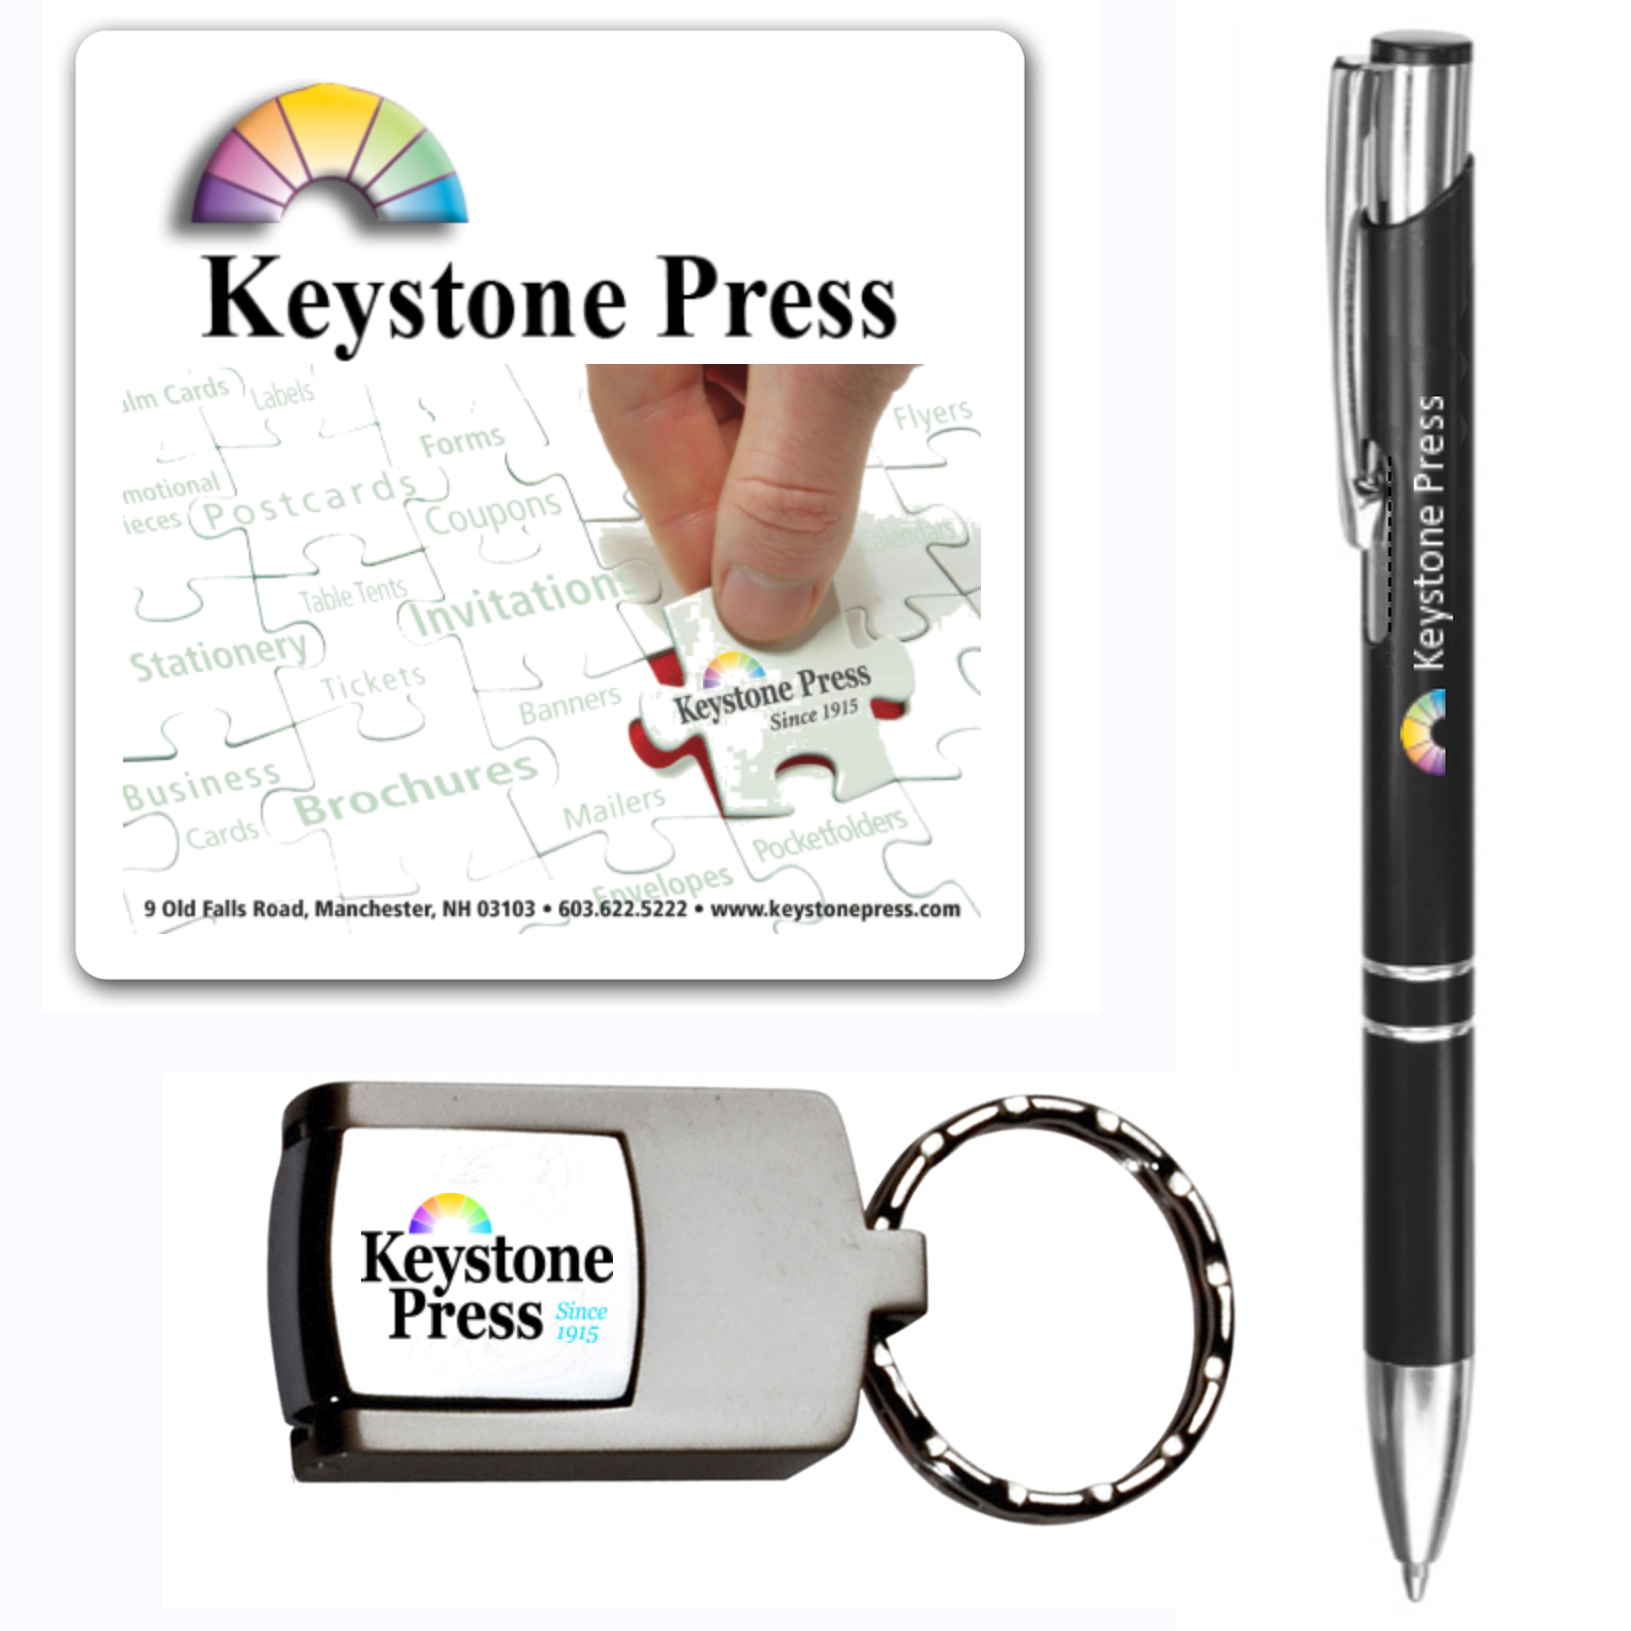 Keystone Press prints logo branded magnets, decals, writing utensils and accessories